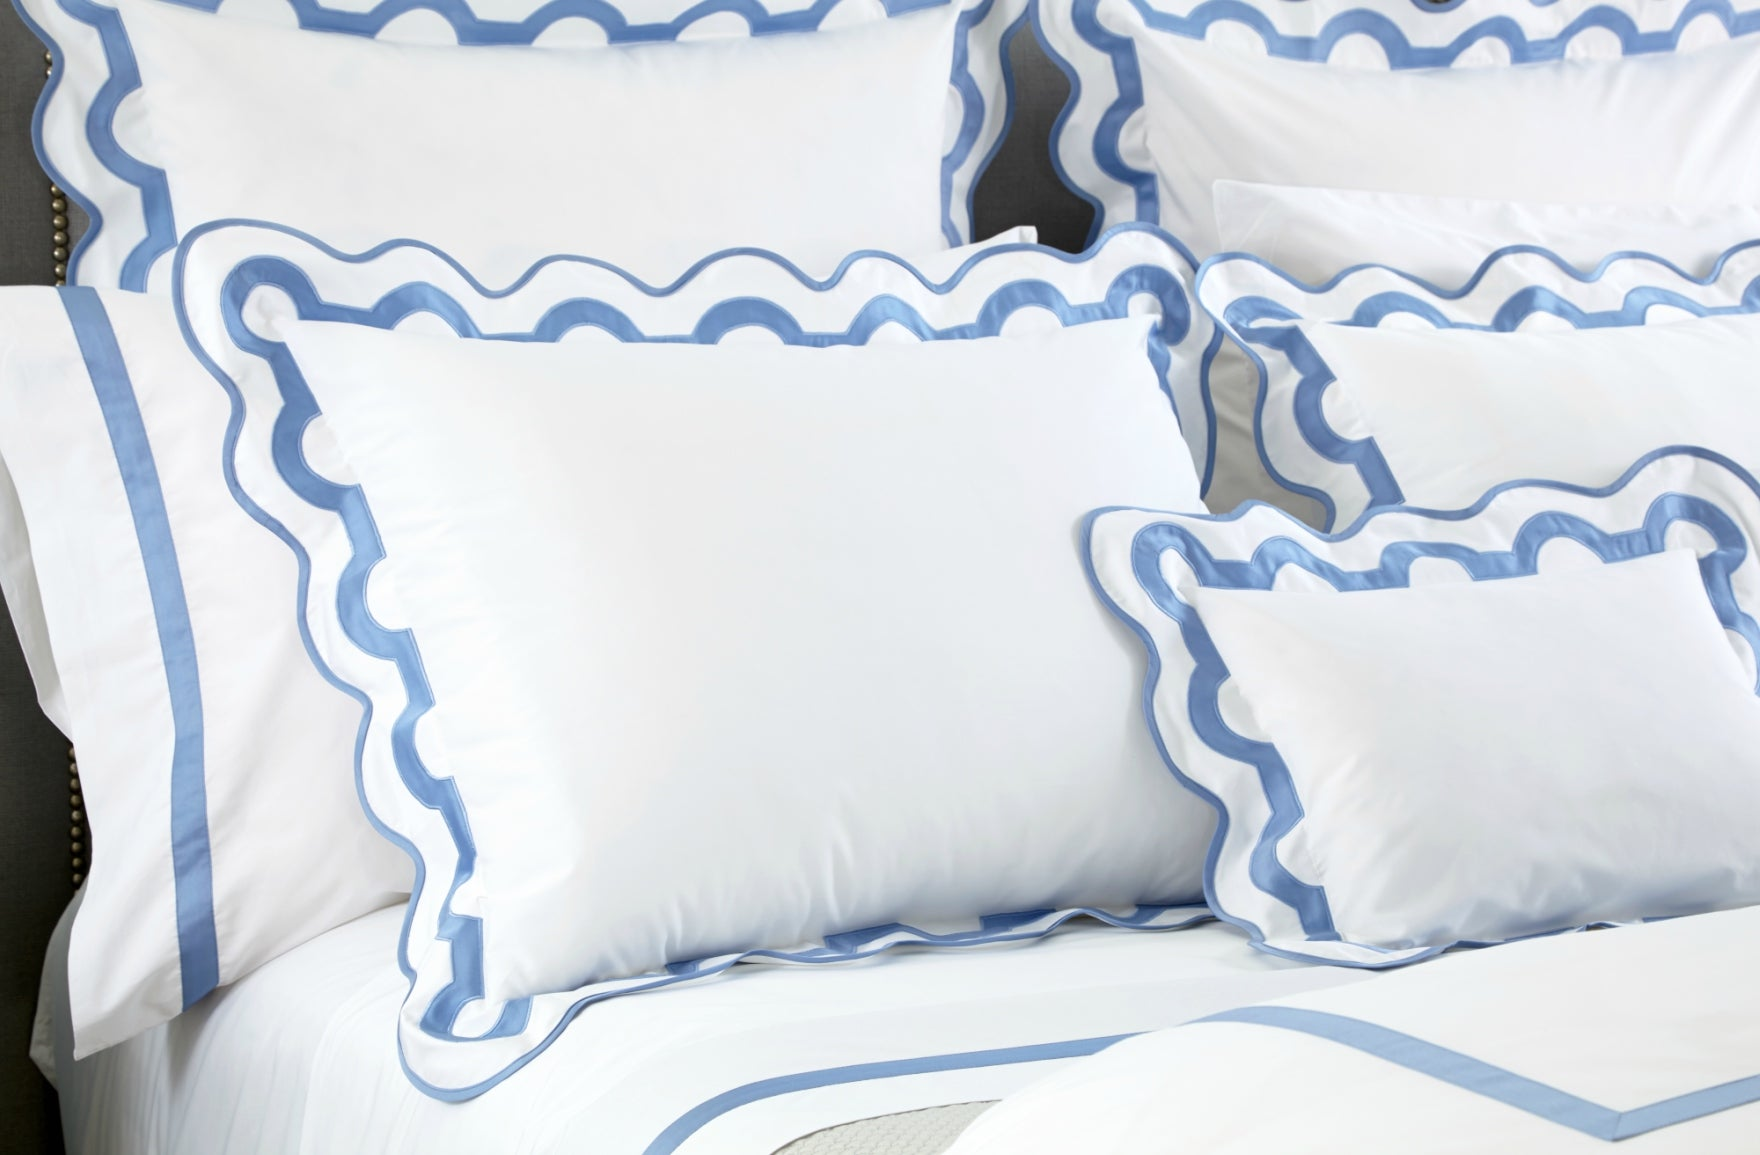 Scalloped Furniture & Decor | Matouk Linens | Shop now at LuxDeco.com and read more in The Luxurist